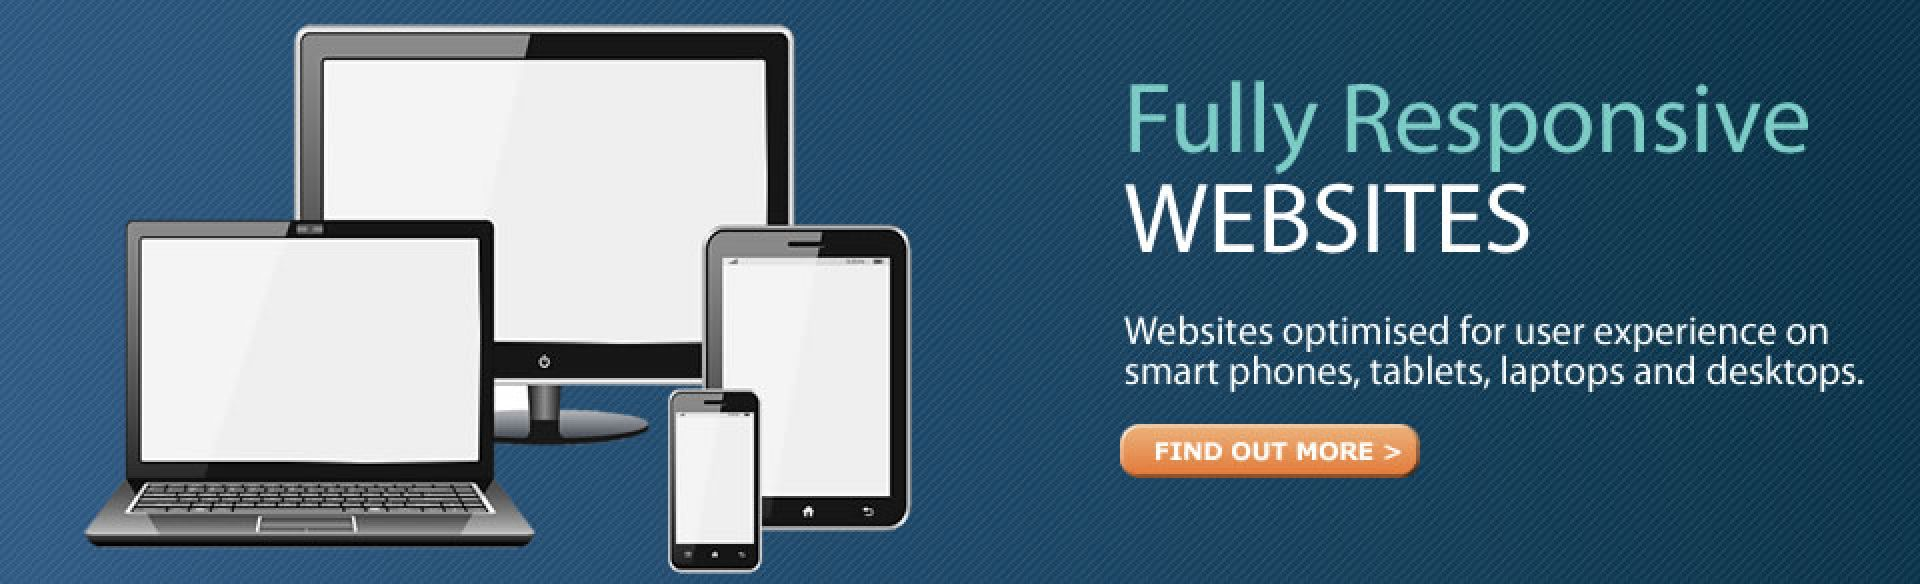 Fully Responsive Websites